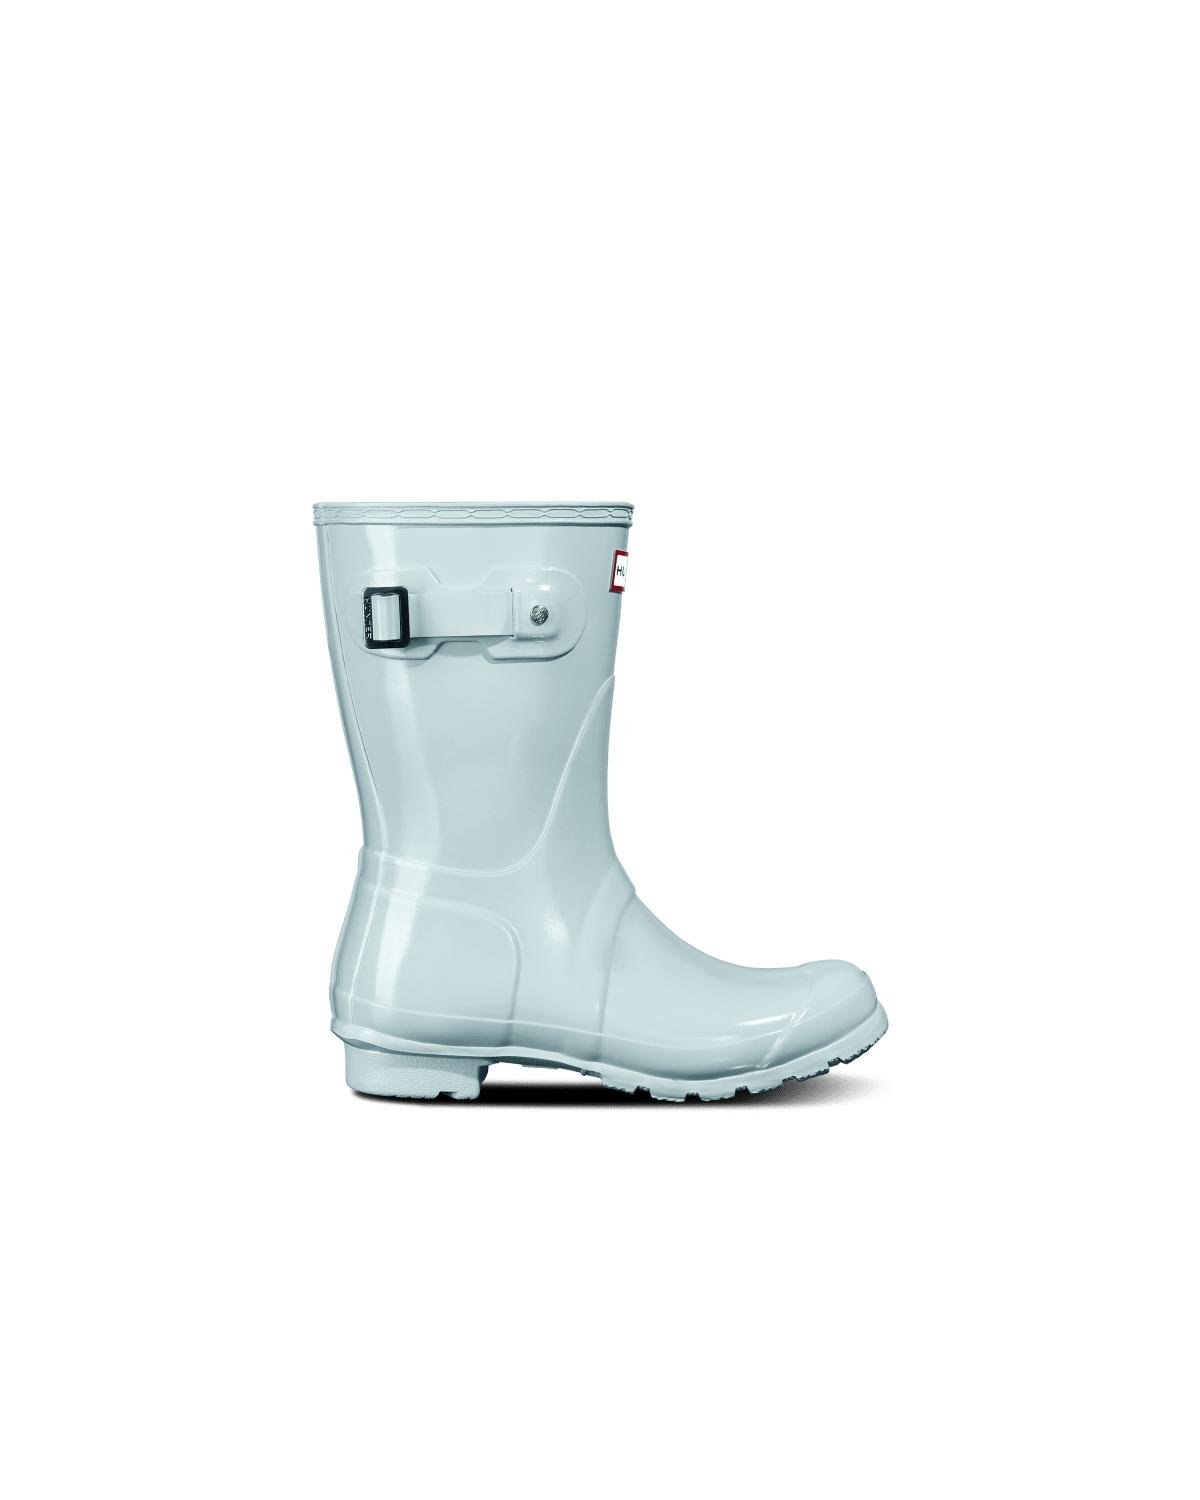 09dd814e181 Lyst - HUNTER Original Short Gloss Rain Boots in Blue